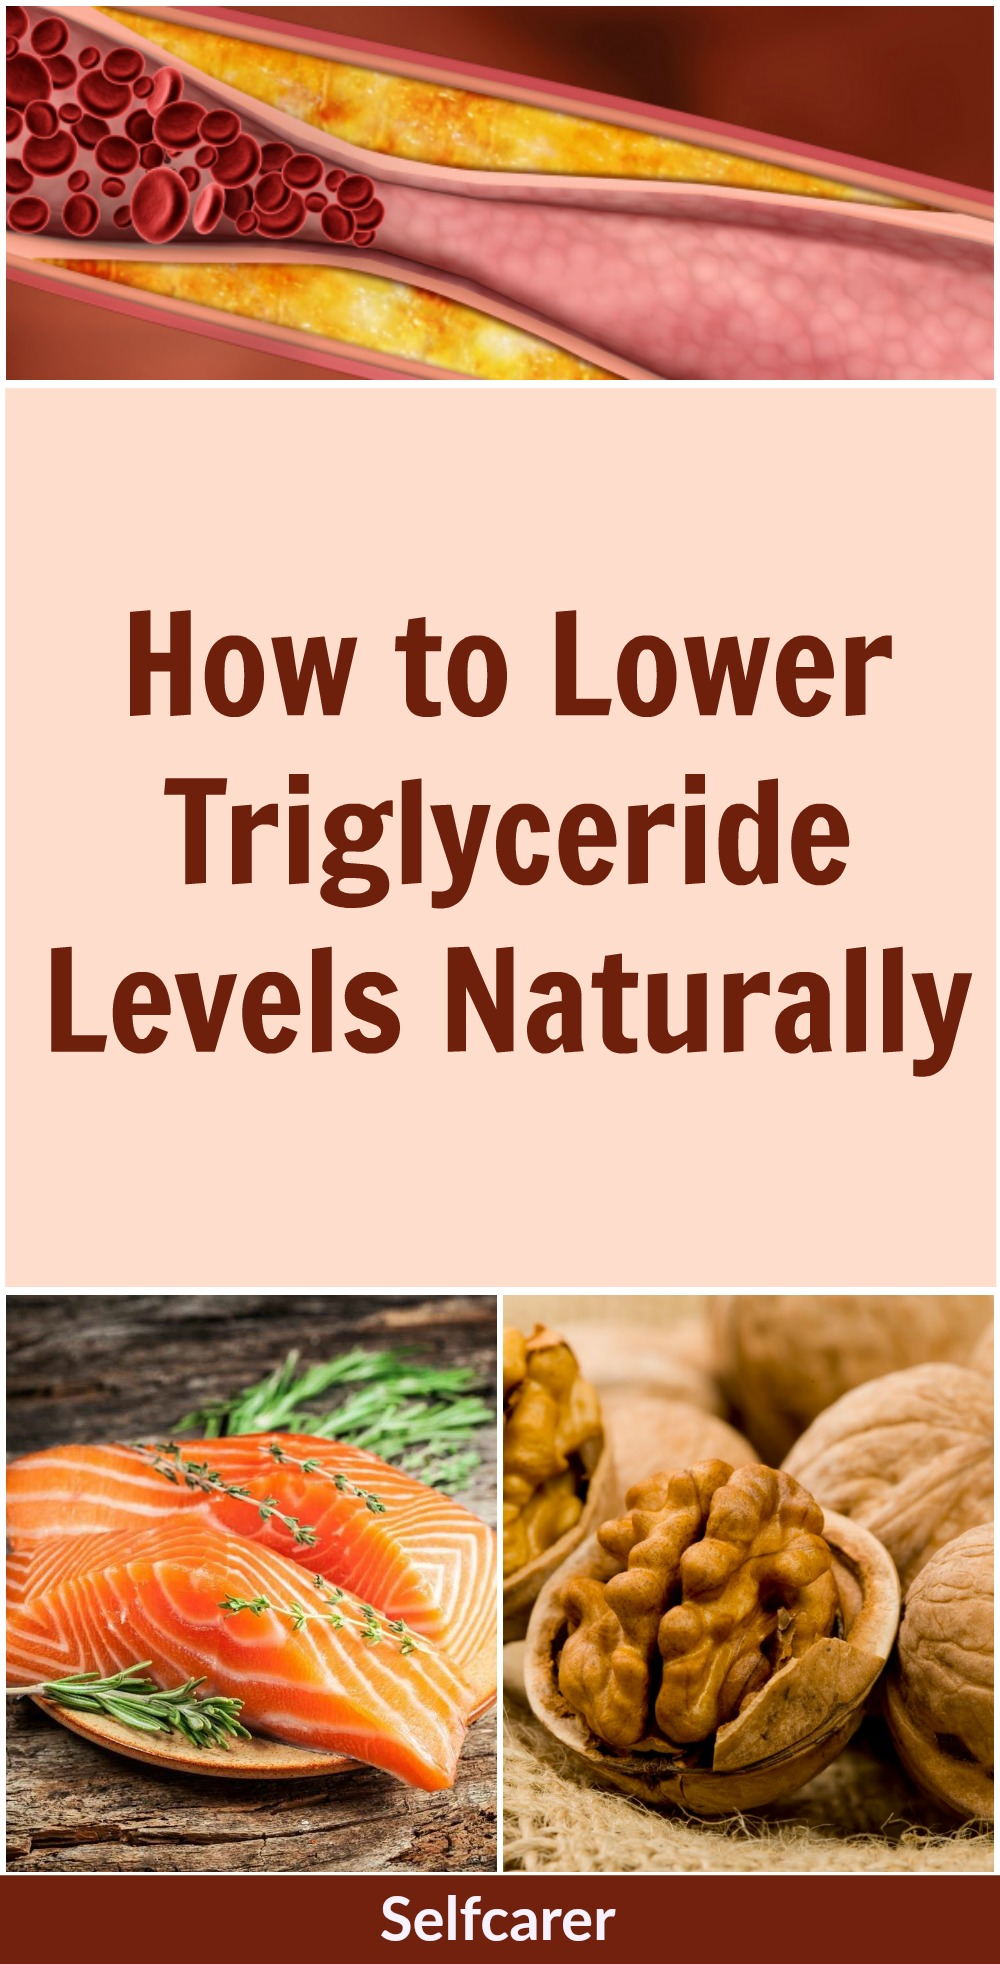 Even if you have low cholesterol levels, having high triglycerides can triple your risk of heart disease and stroke. Fortunately, there are several ways to lower your triglyceride levels if they tend to be high.